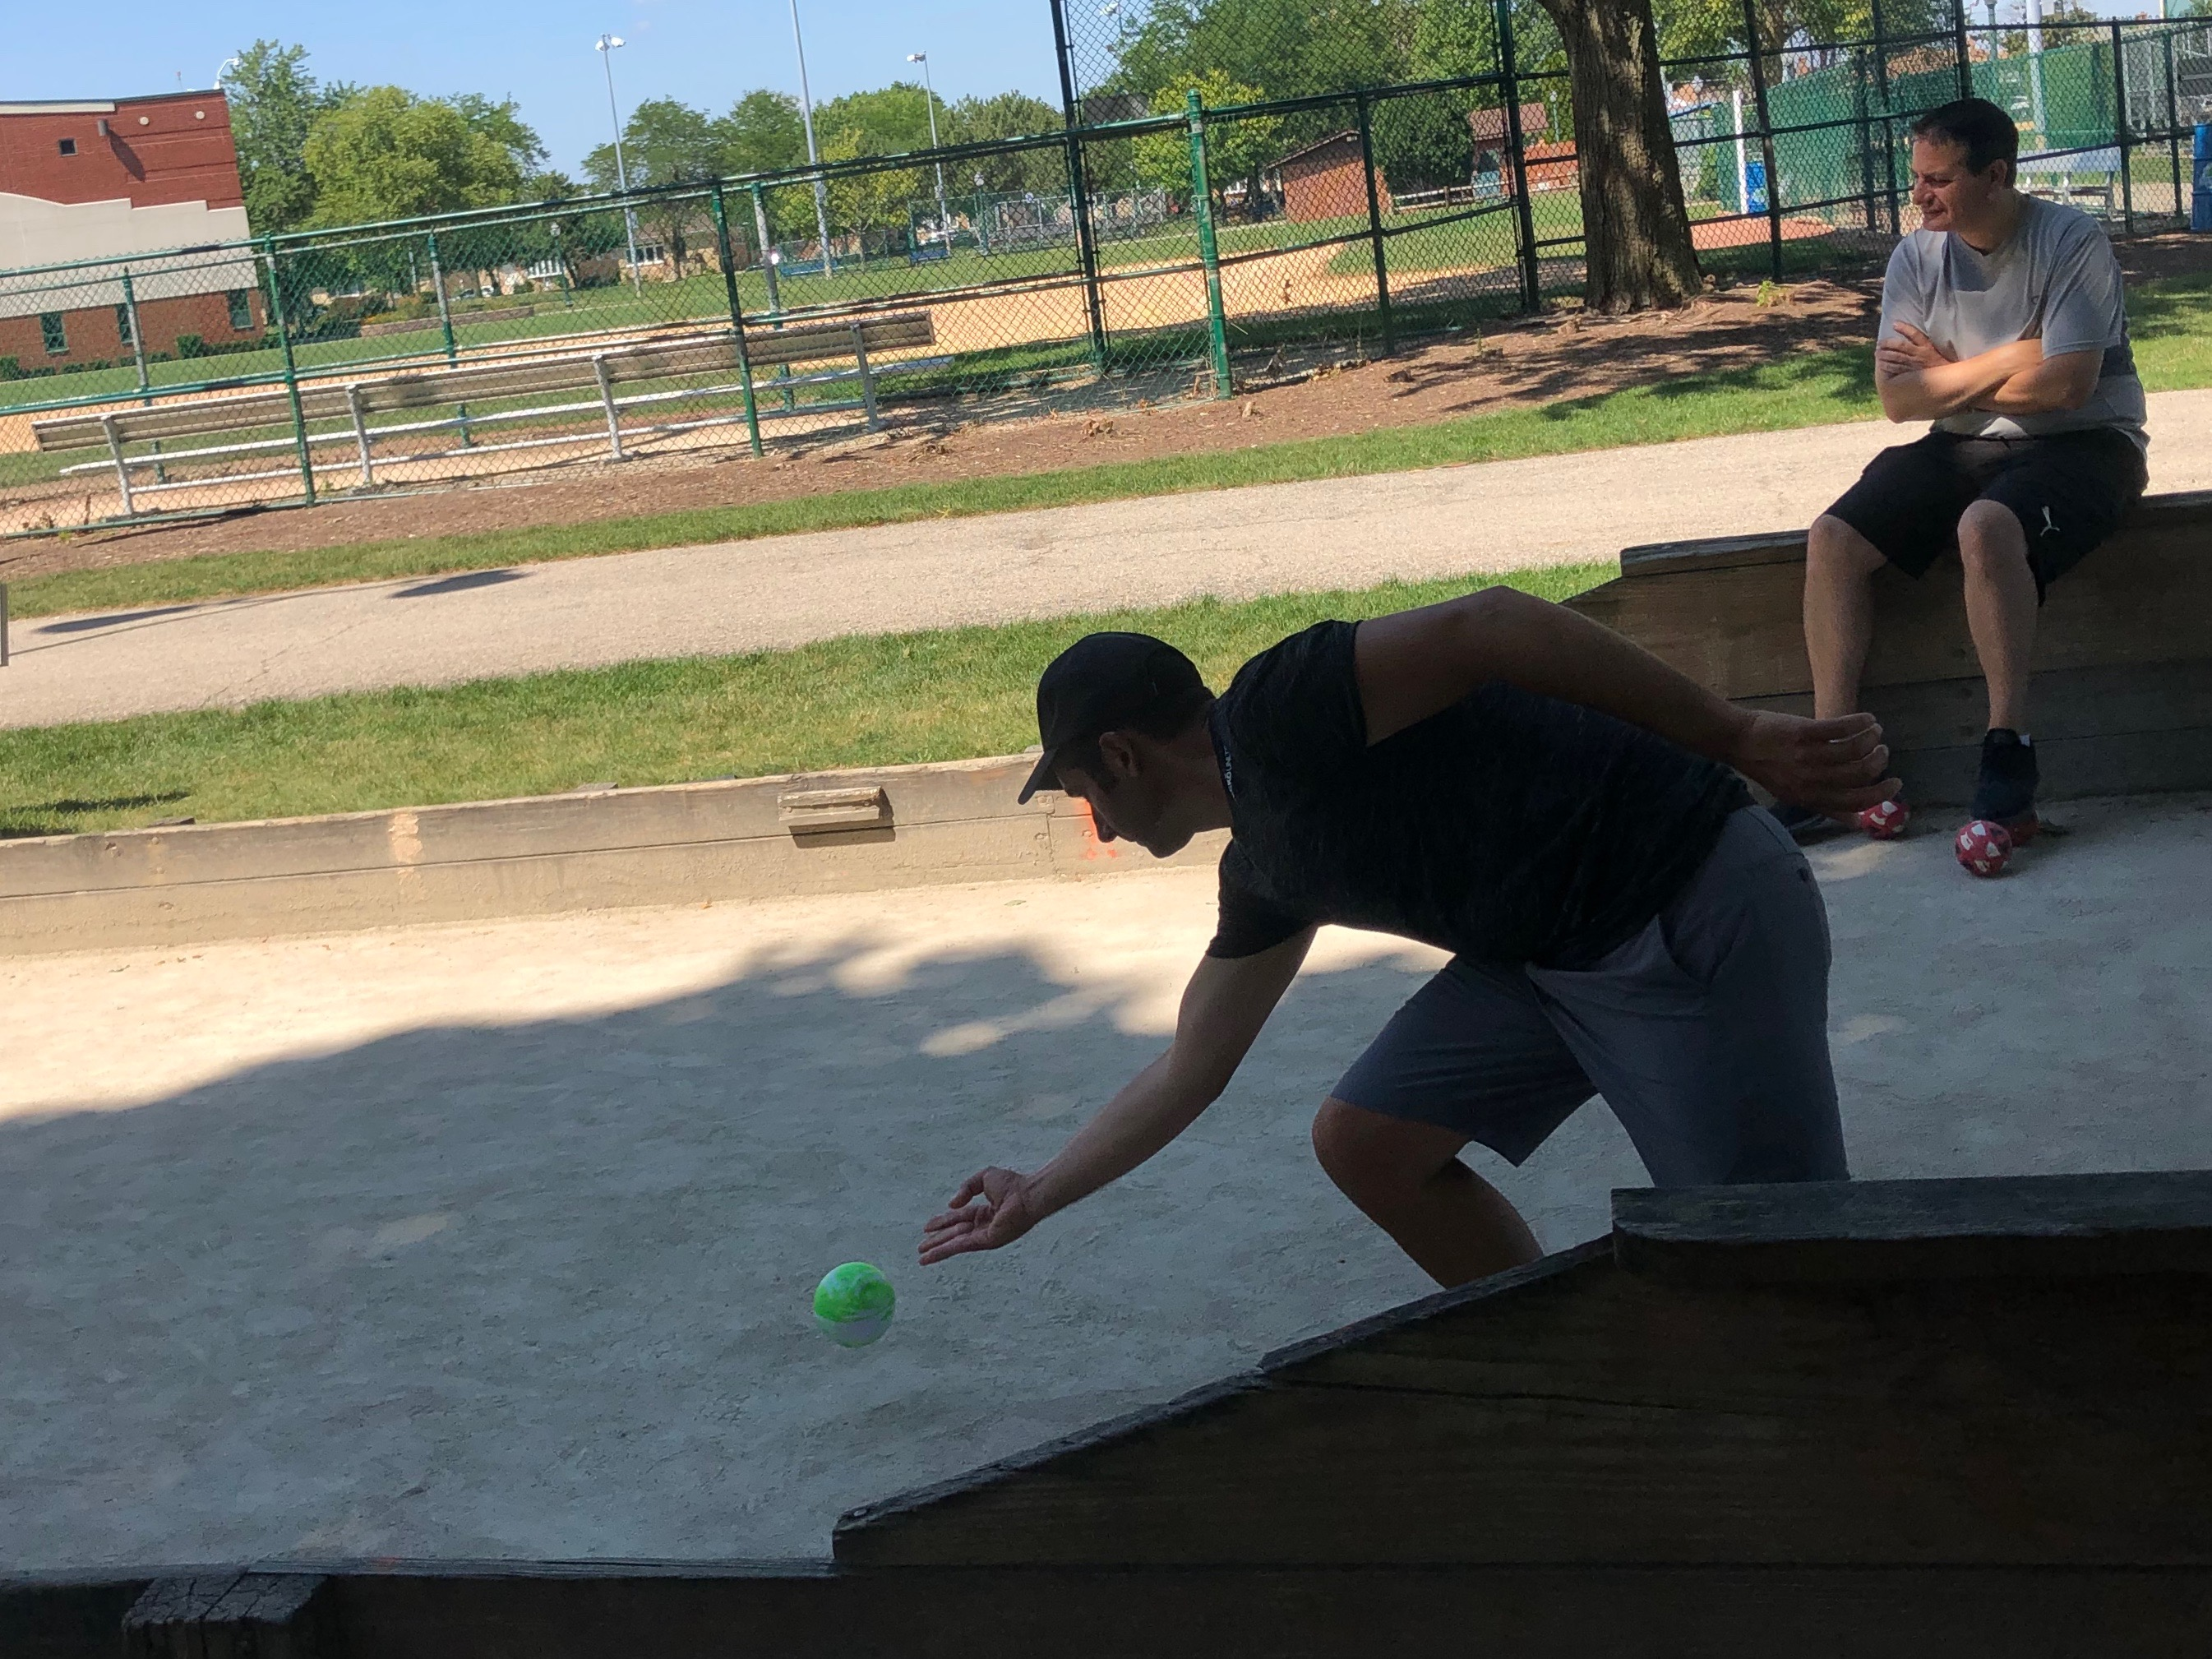 champion bocce player rolling ball